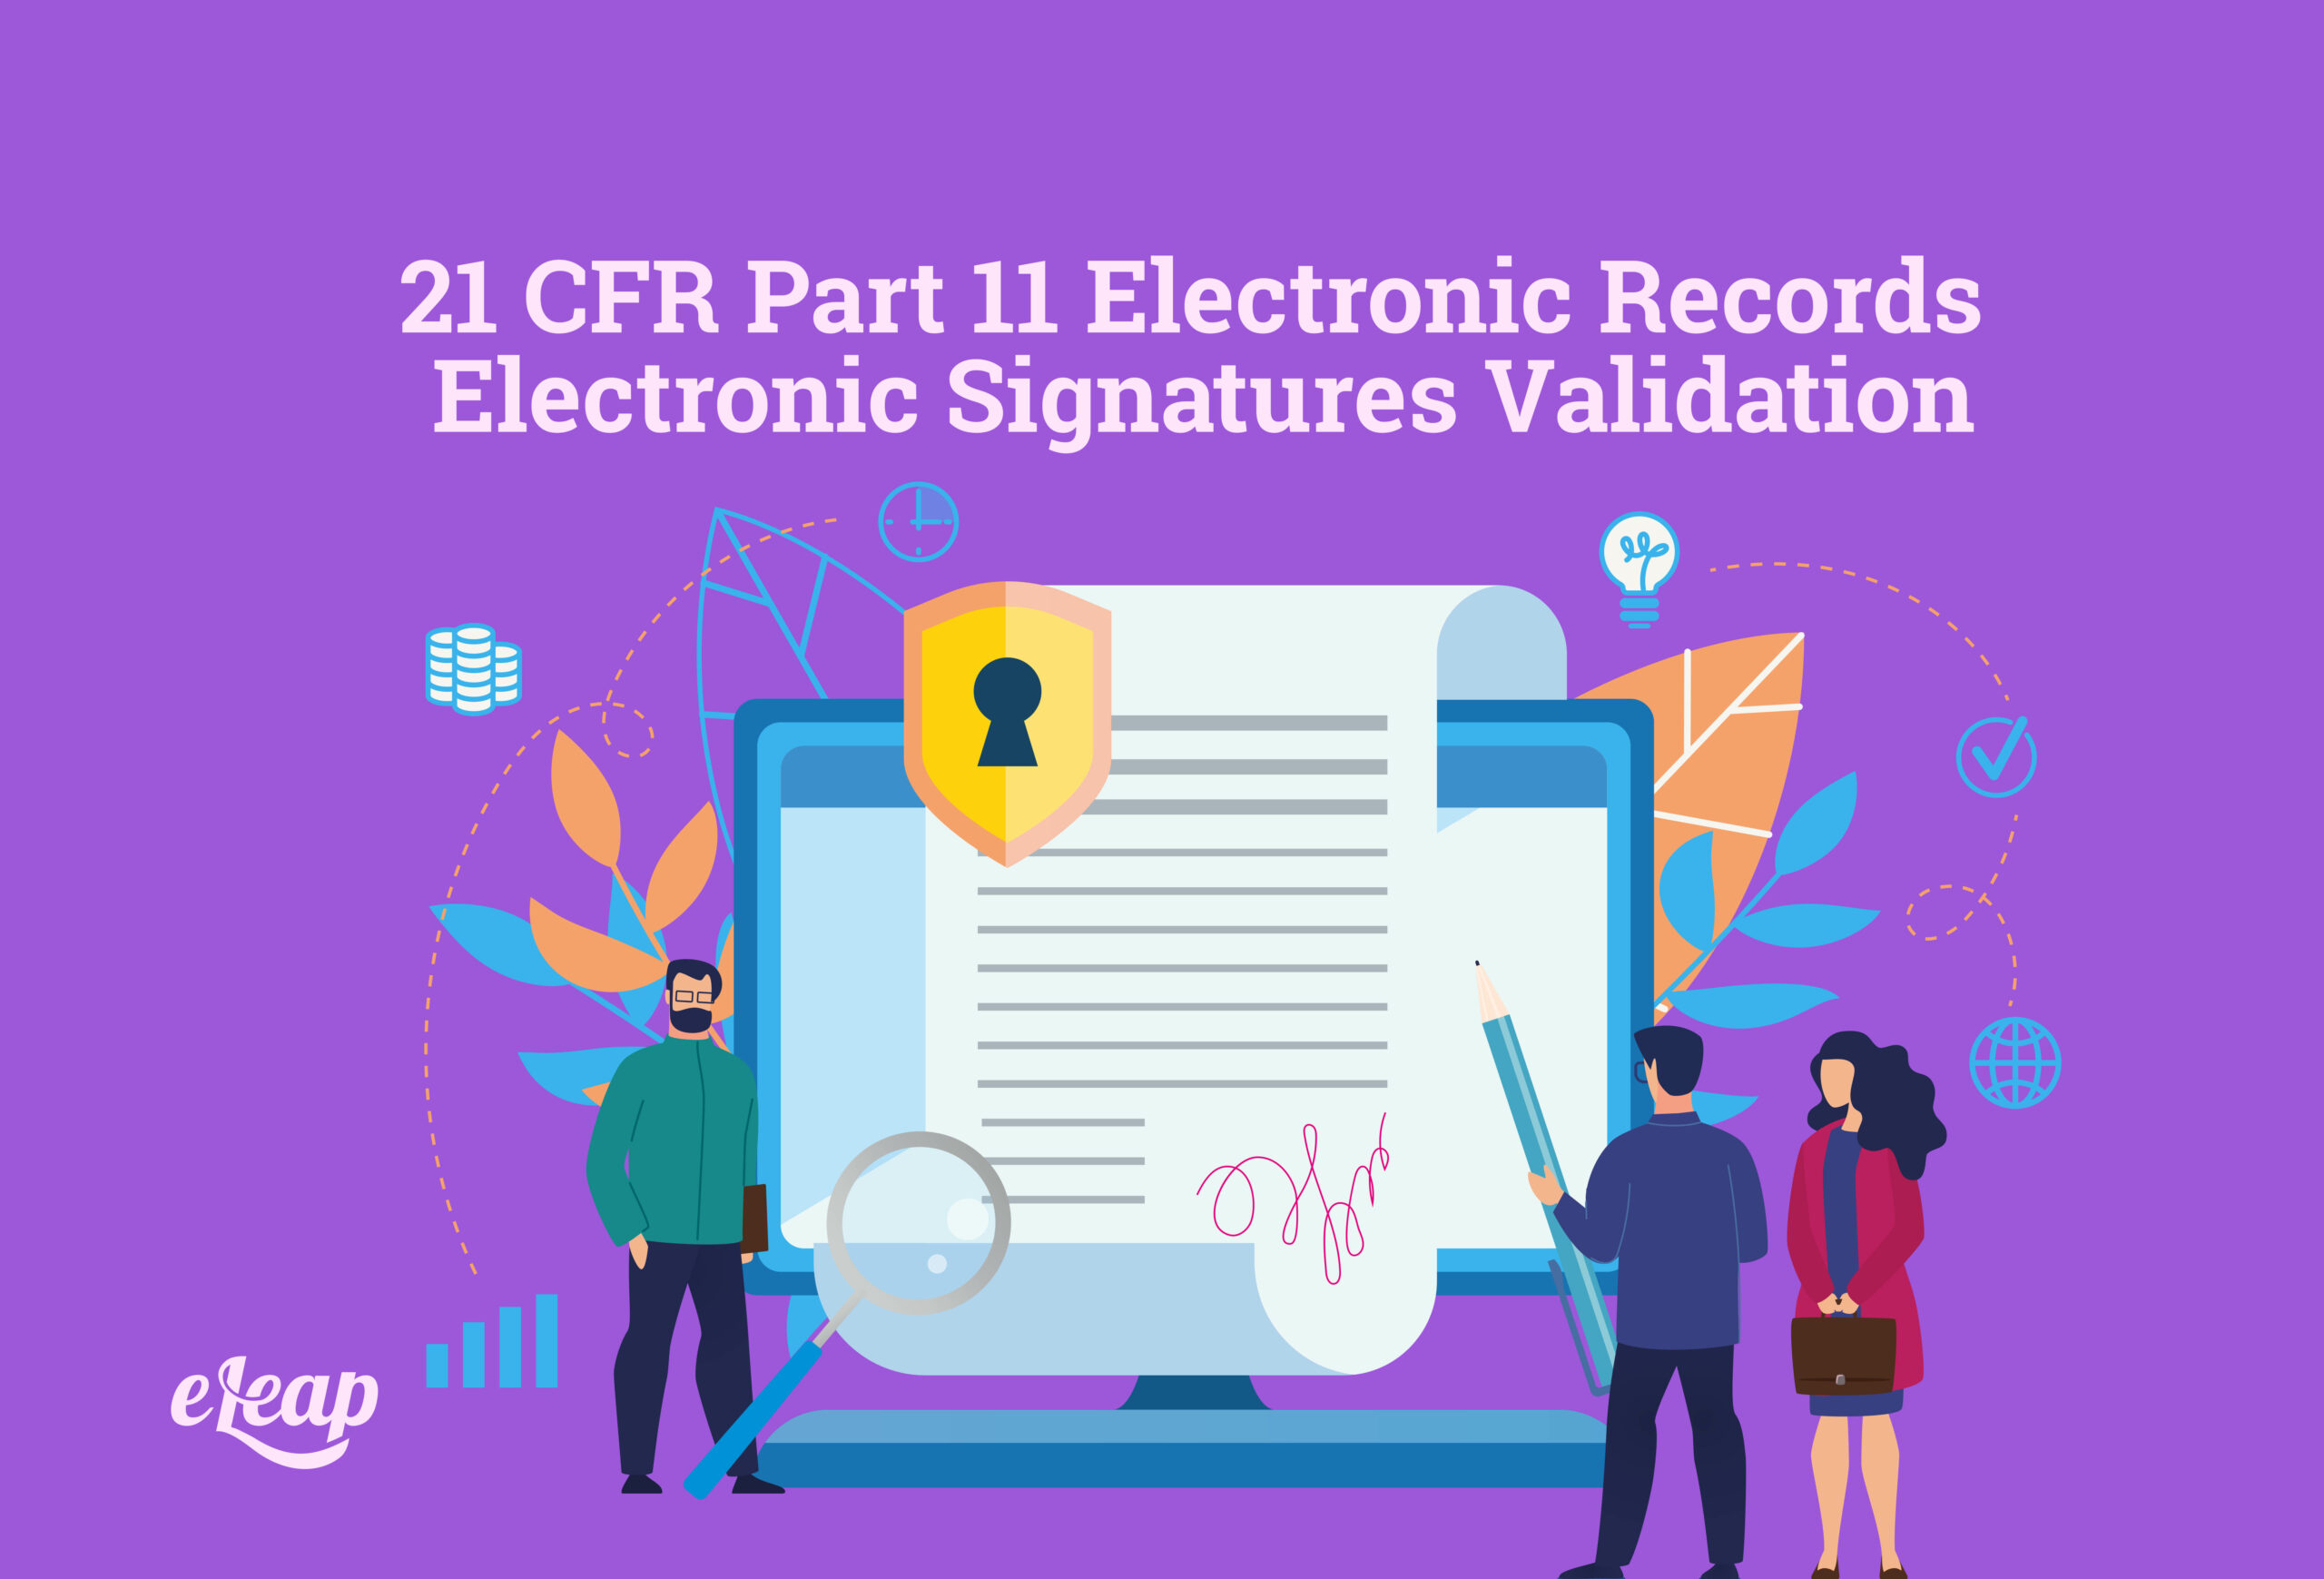 21 CFR Part 11 Electronic Records Electronic Signatures Validation